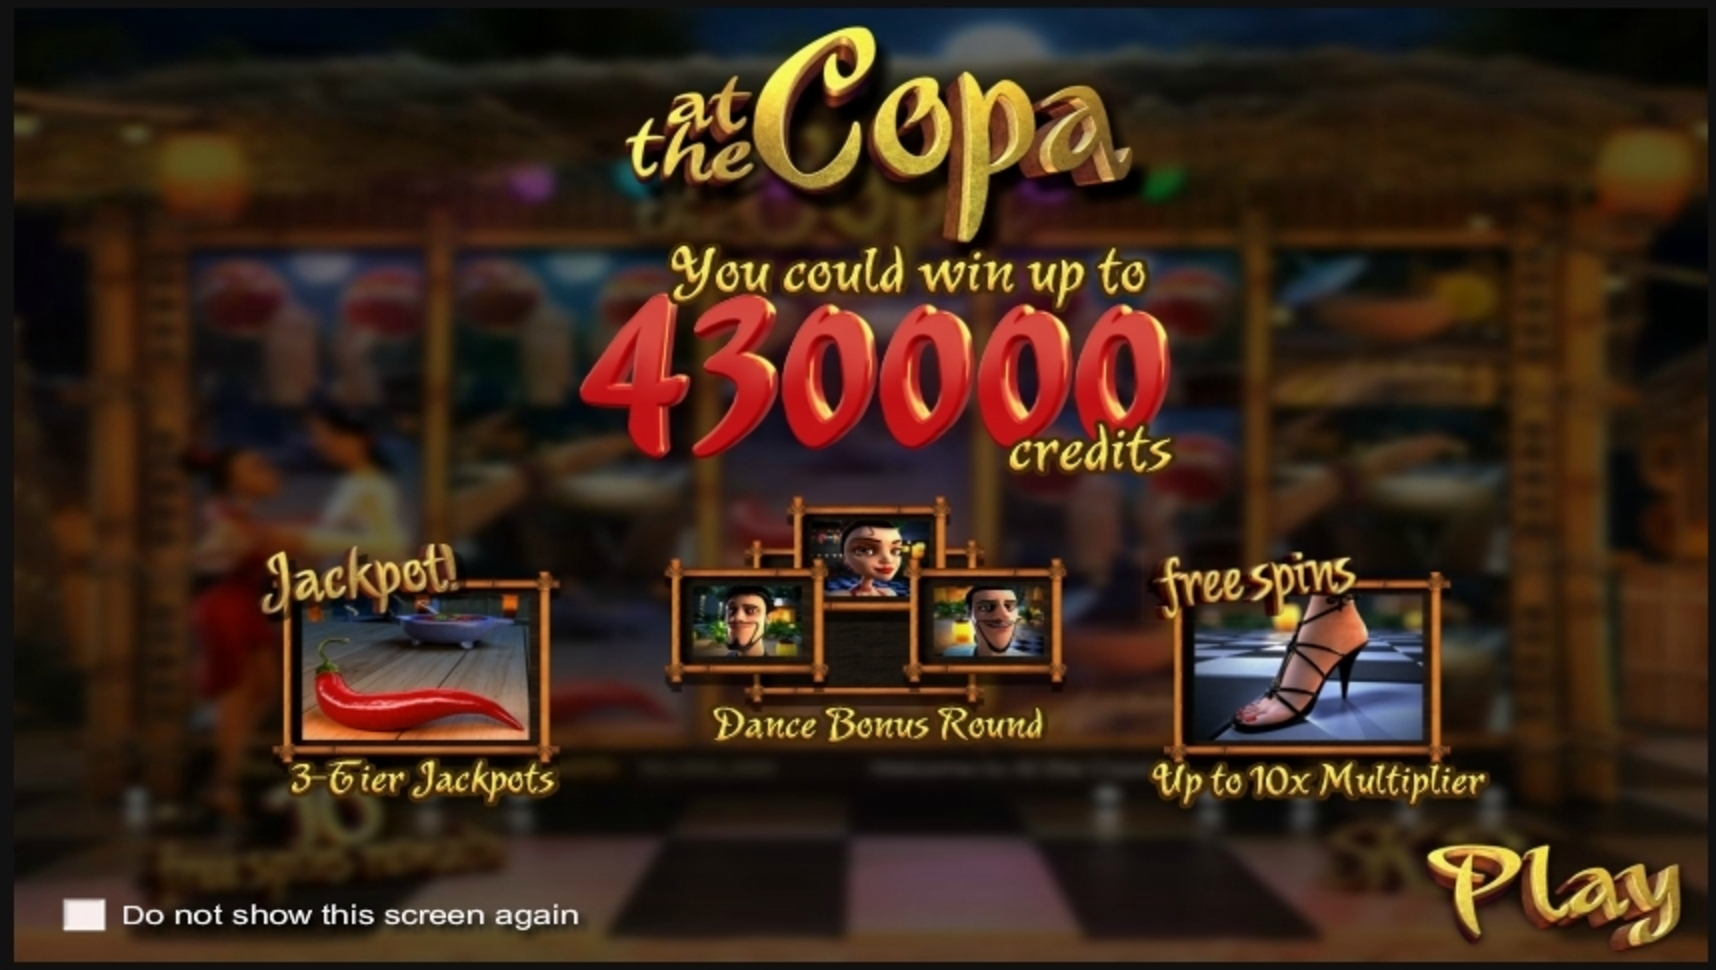 Play At the Copa Free Casino Slot Game by Betsoft